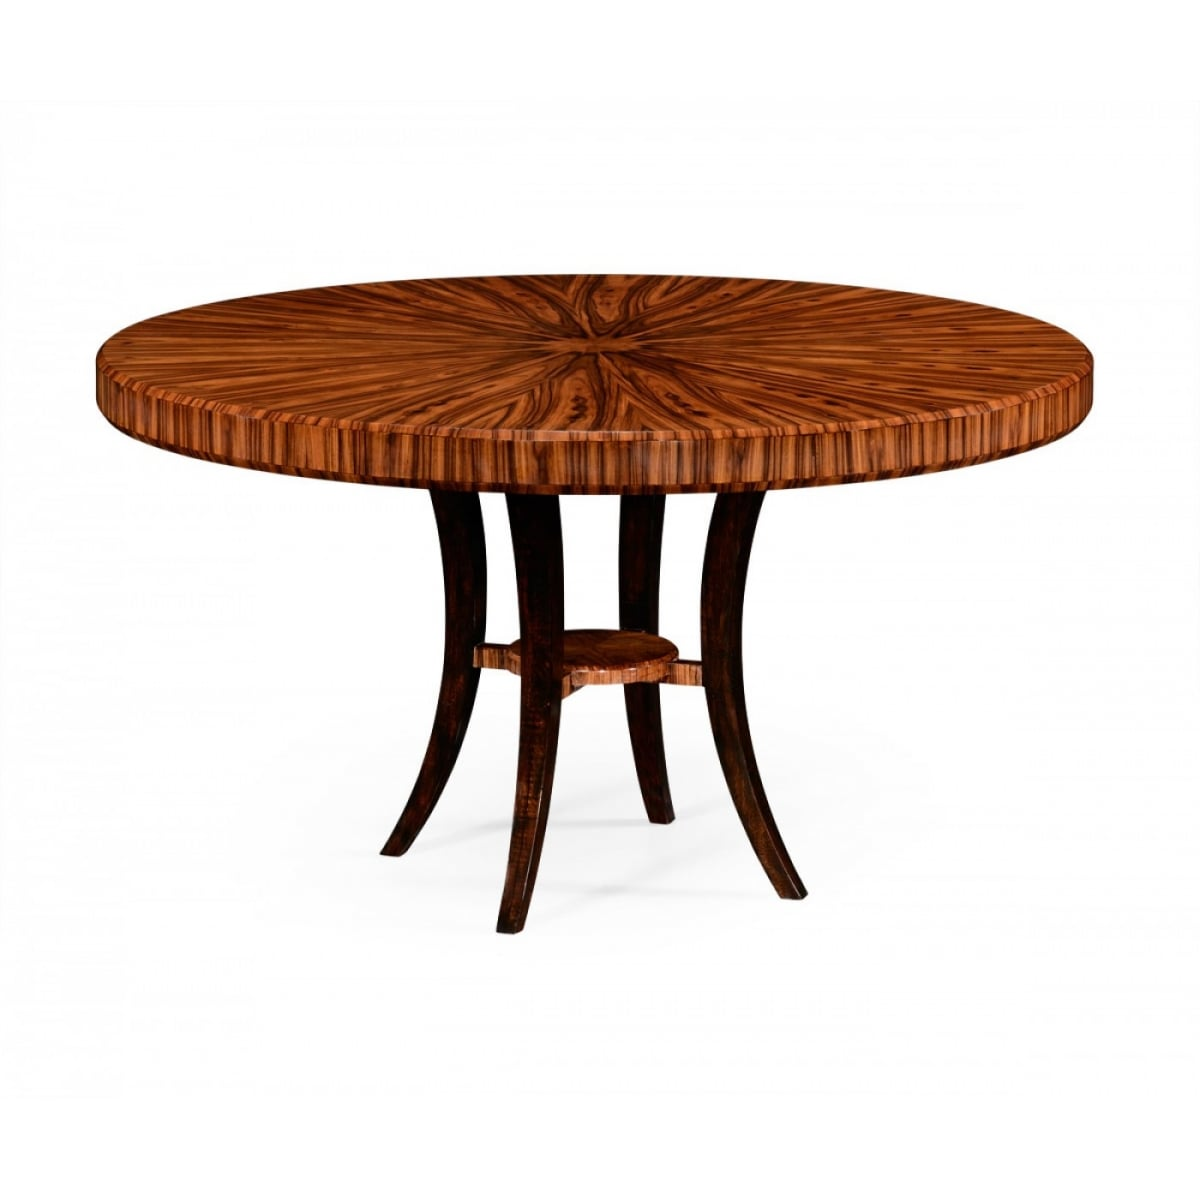 6 Seater Round Dining Table: Glass Top For 6 Seater Round Dining Table Dia.135.2cm